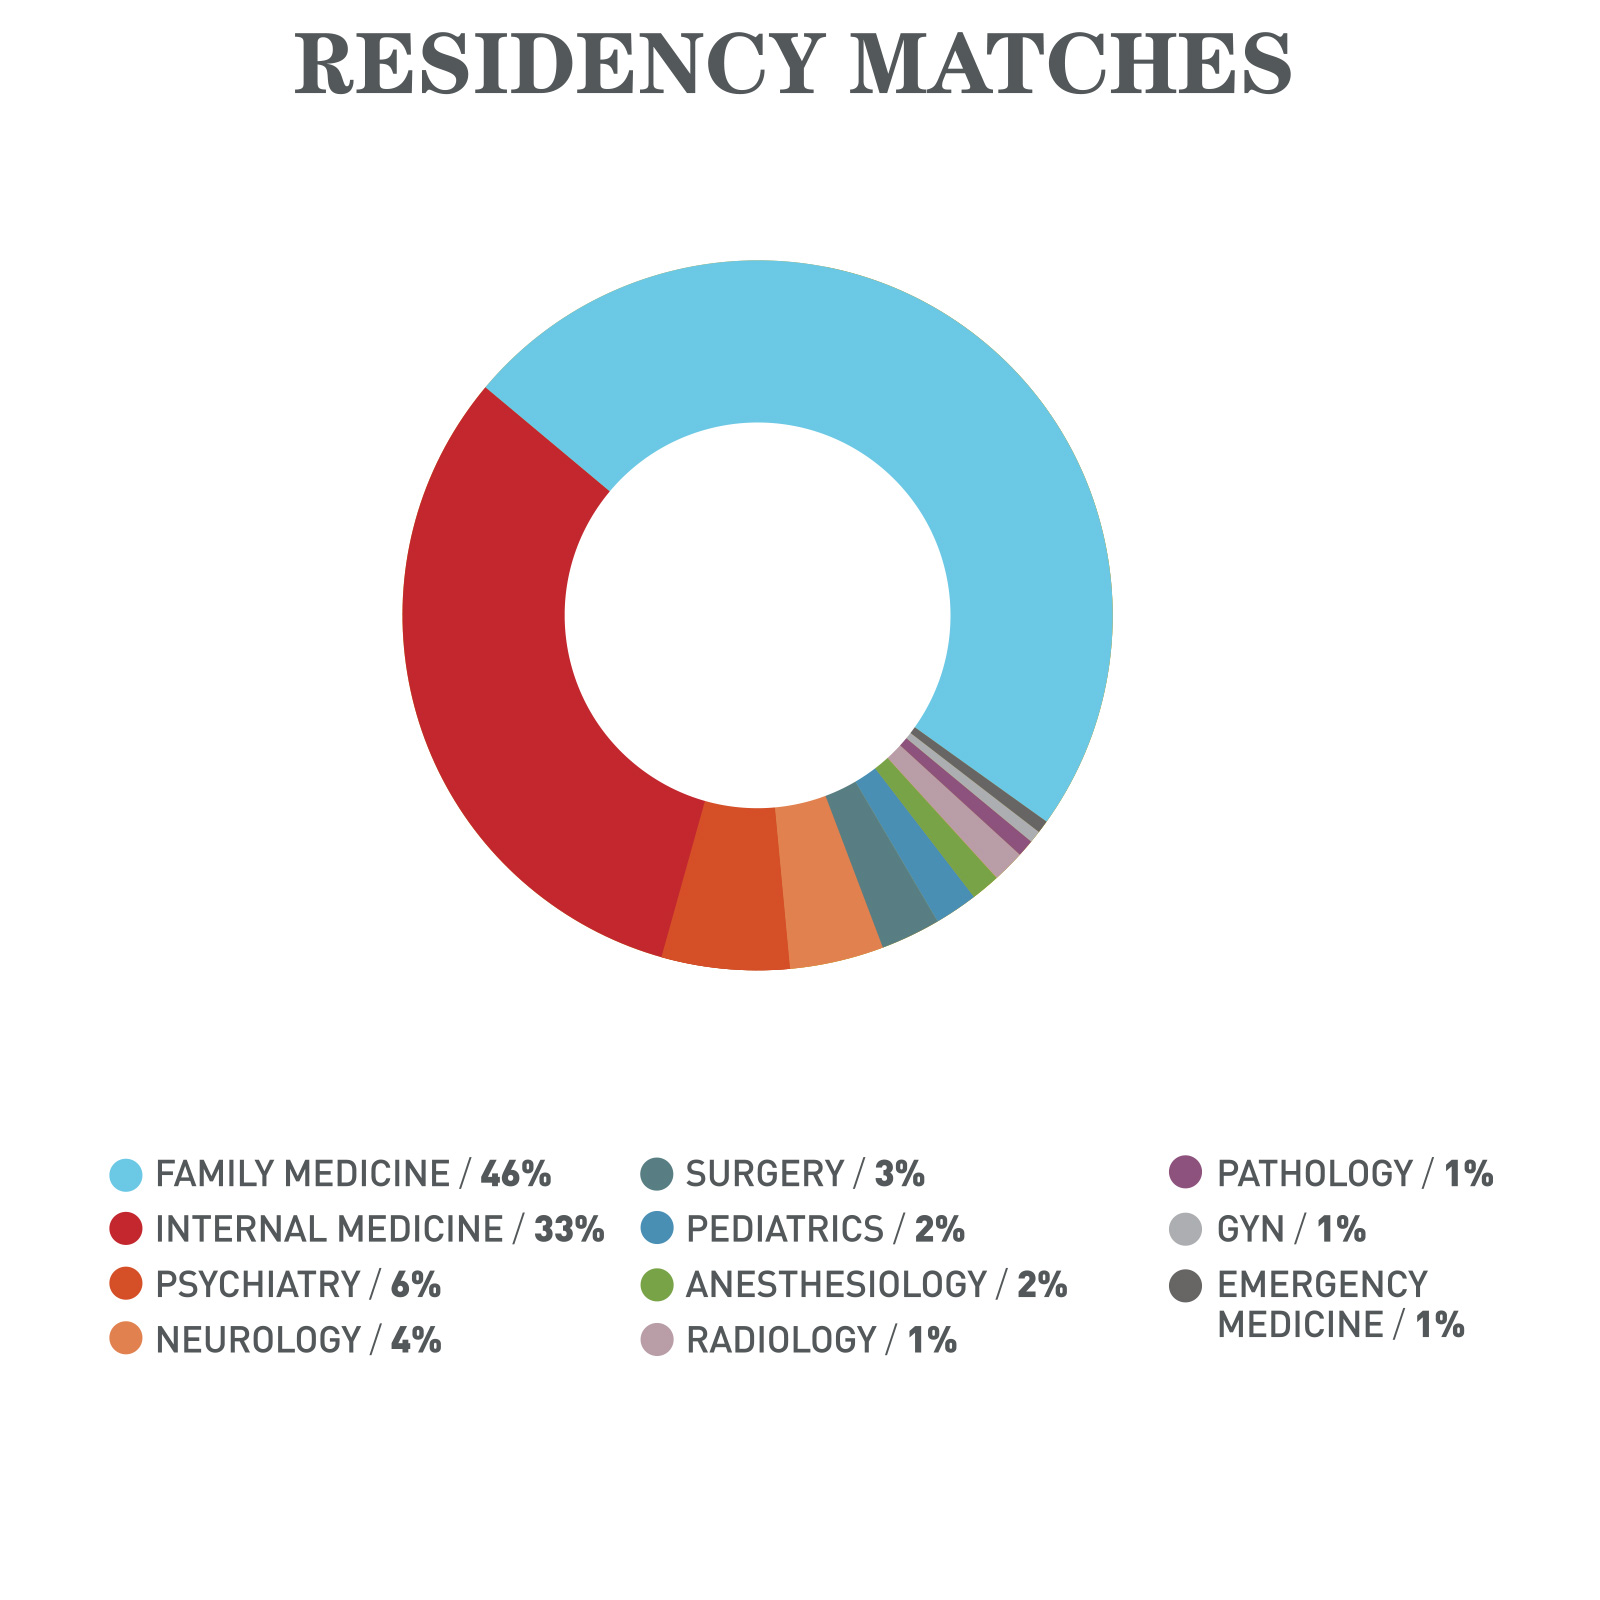 Residency Matches